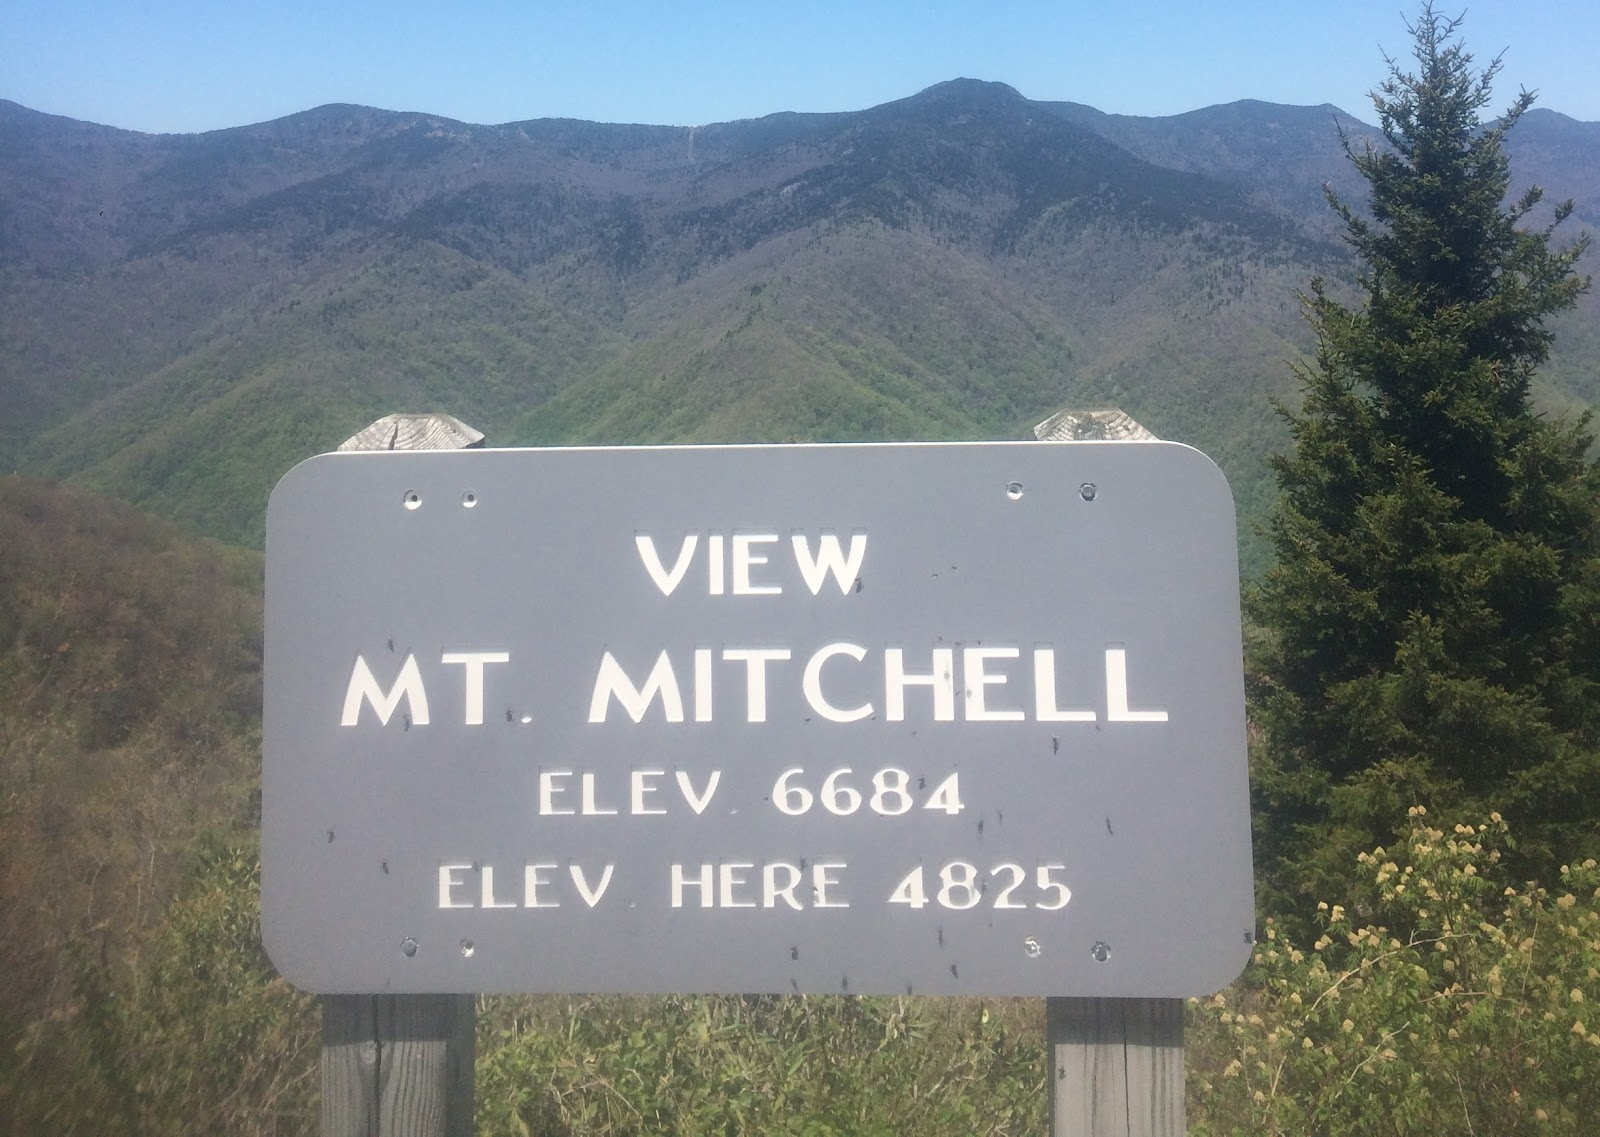 Bicycle climb to Mt. Mitchell - Mt. Mitchell lookout and viewpoint sign.